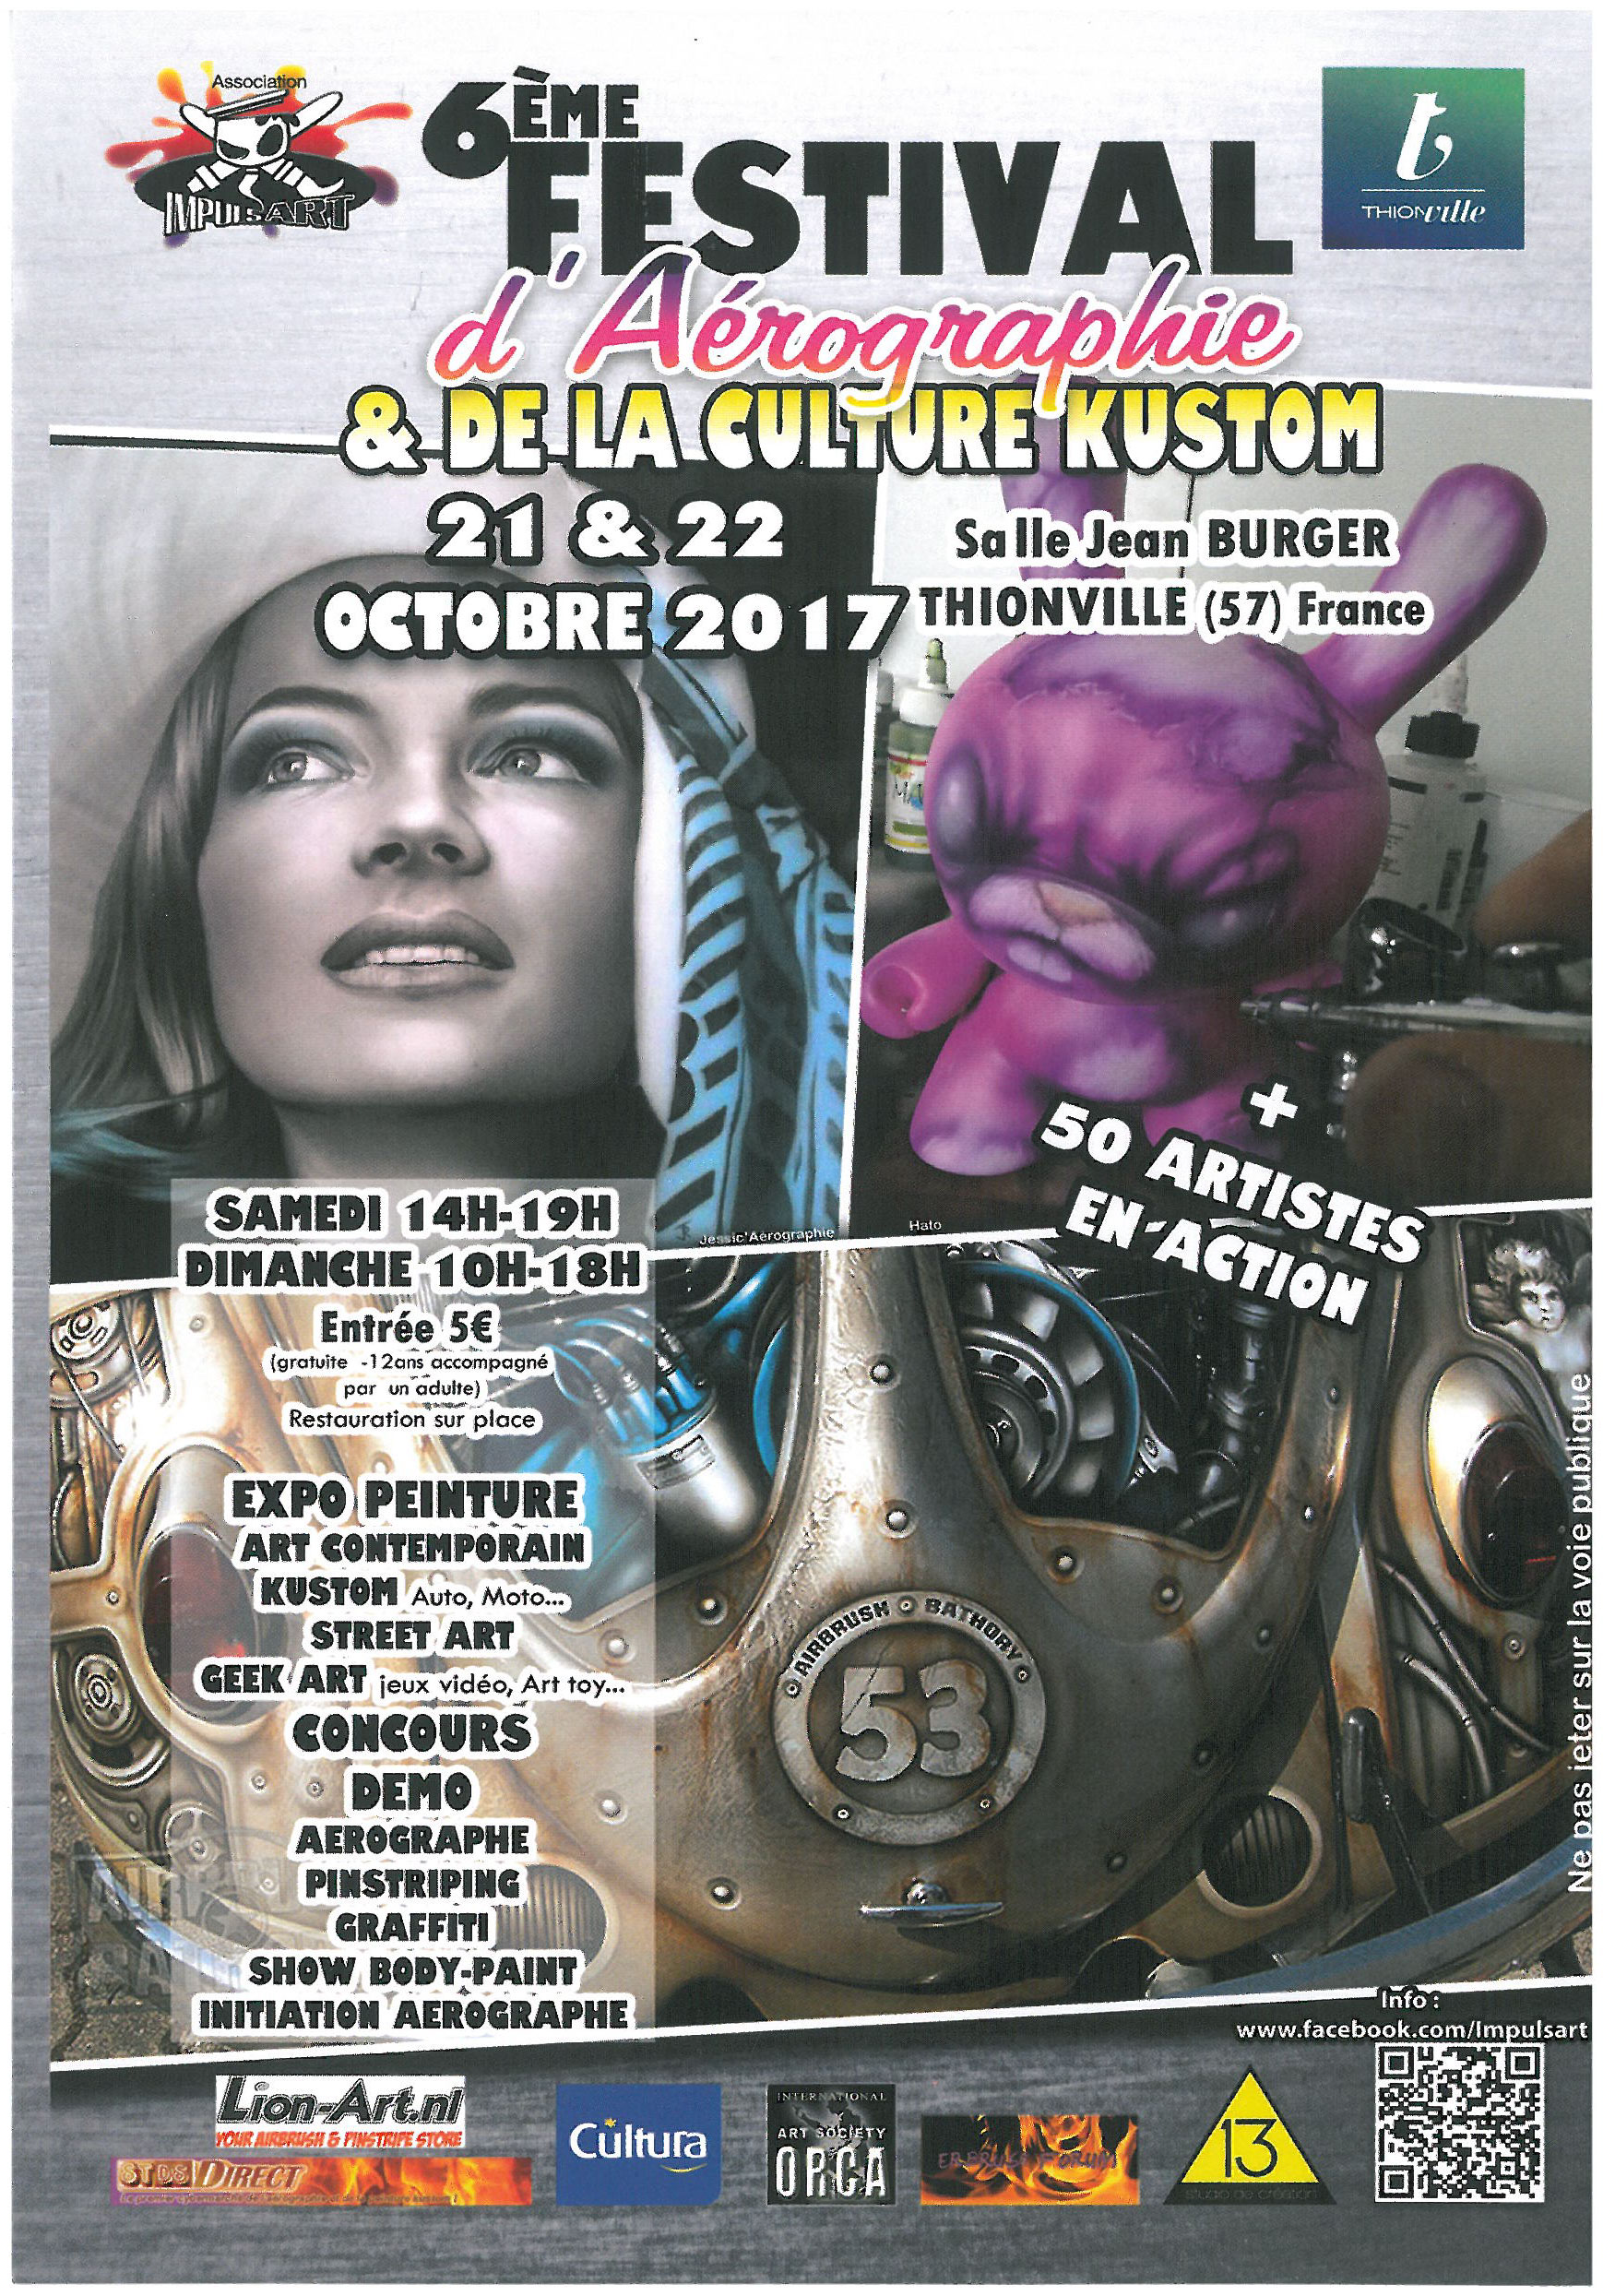 6th Airbrush Festival in Thionville, France